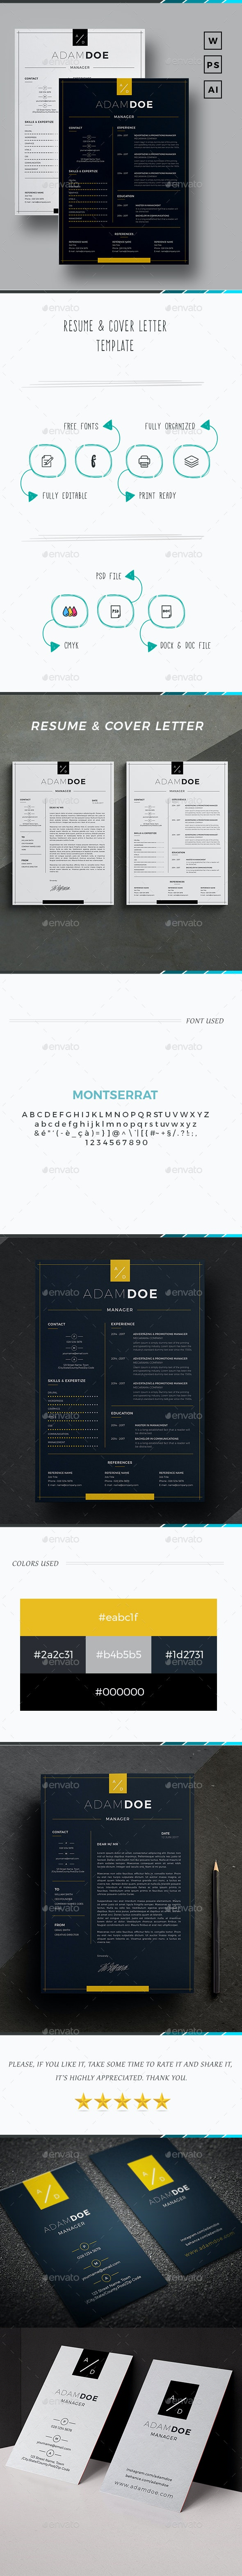 Resume - Adam Doe - - Resumes Stationery